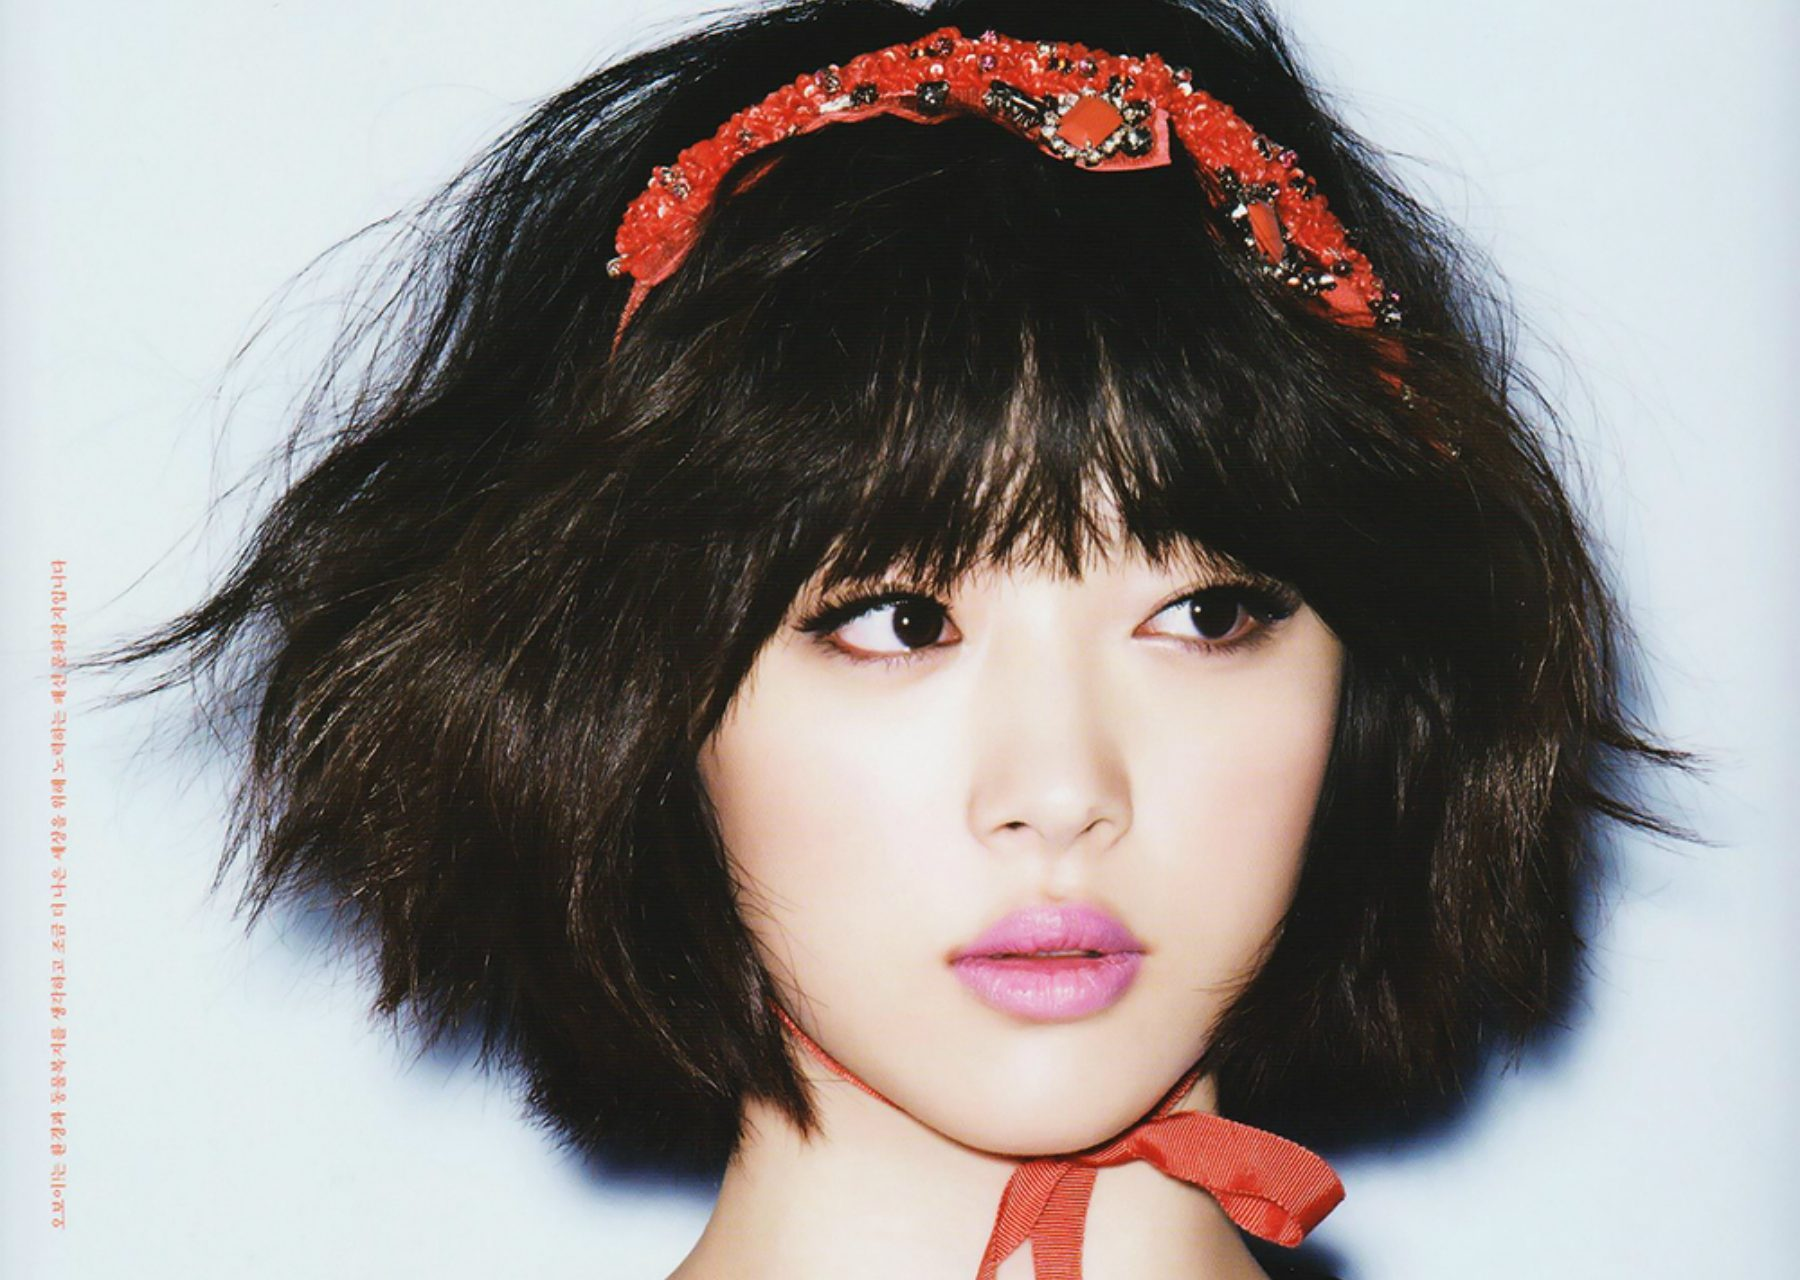 Remembering Sulli, a K-Pop star whose life ended too soon